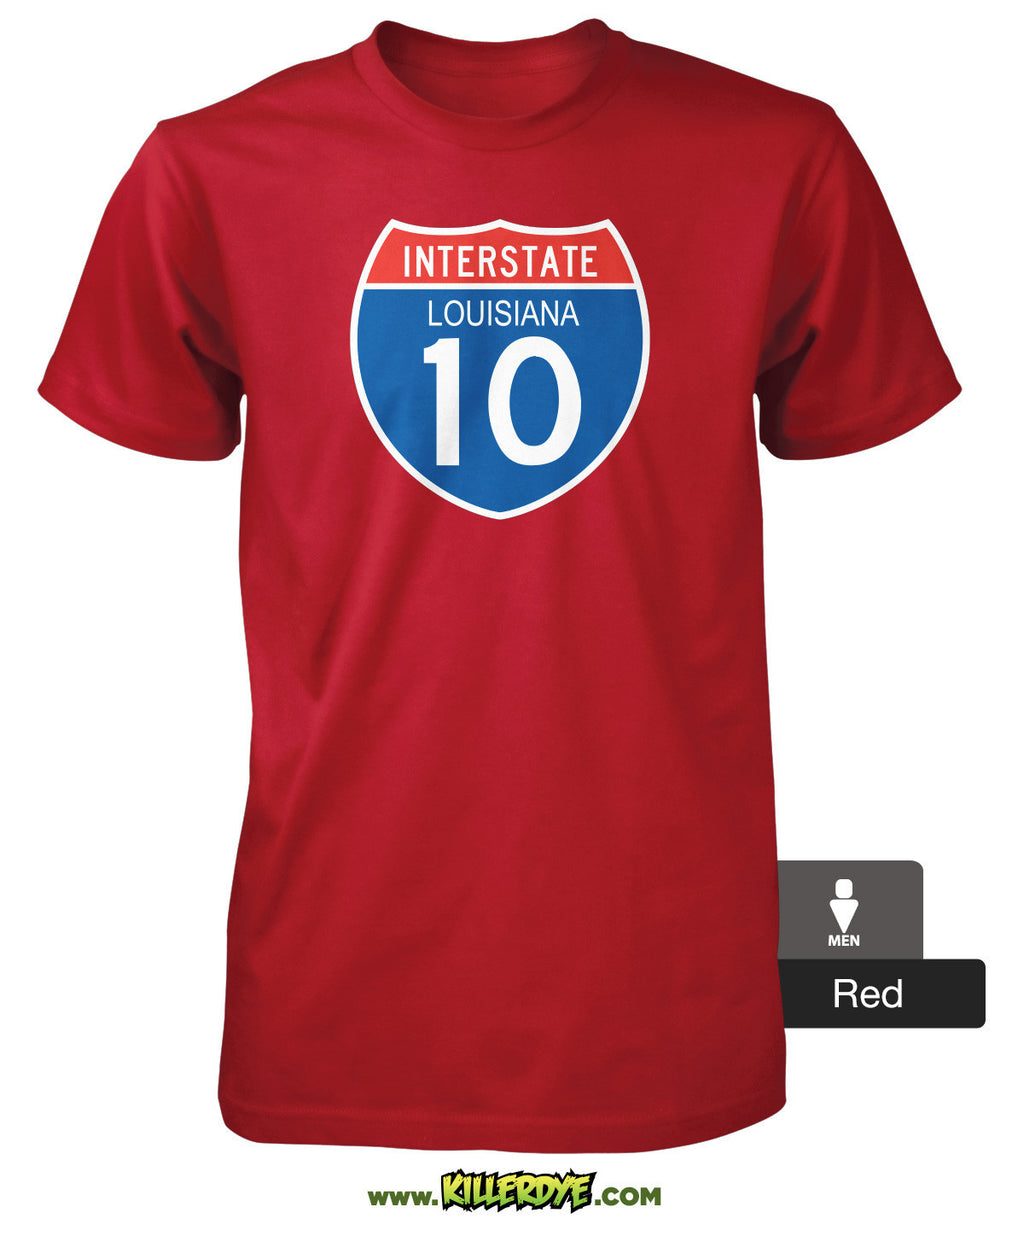 Interstate - I-10 - Louisiana T-Shirt - Men's - KillerDye T-Shirts